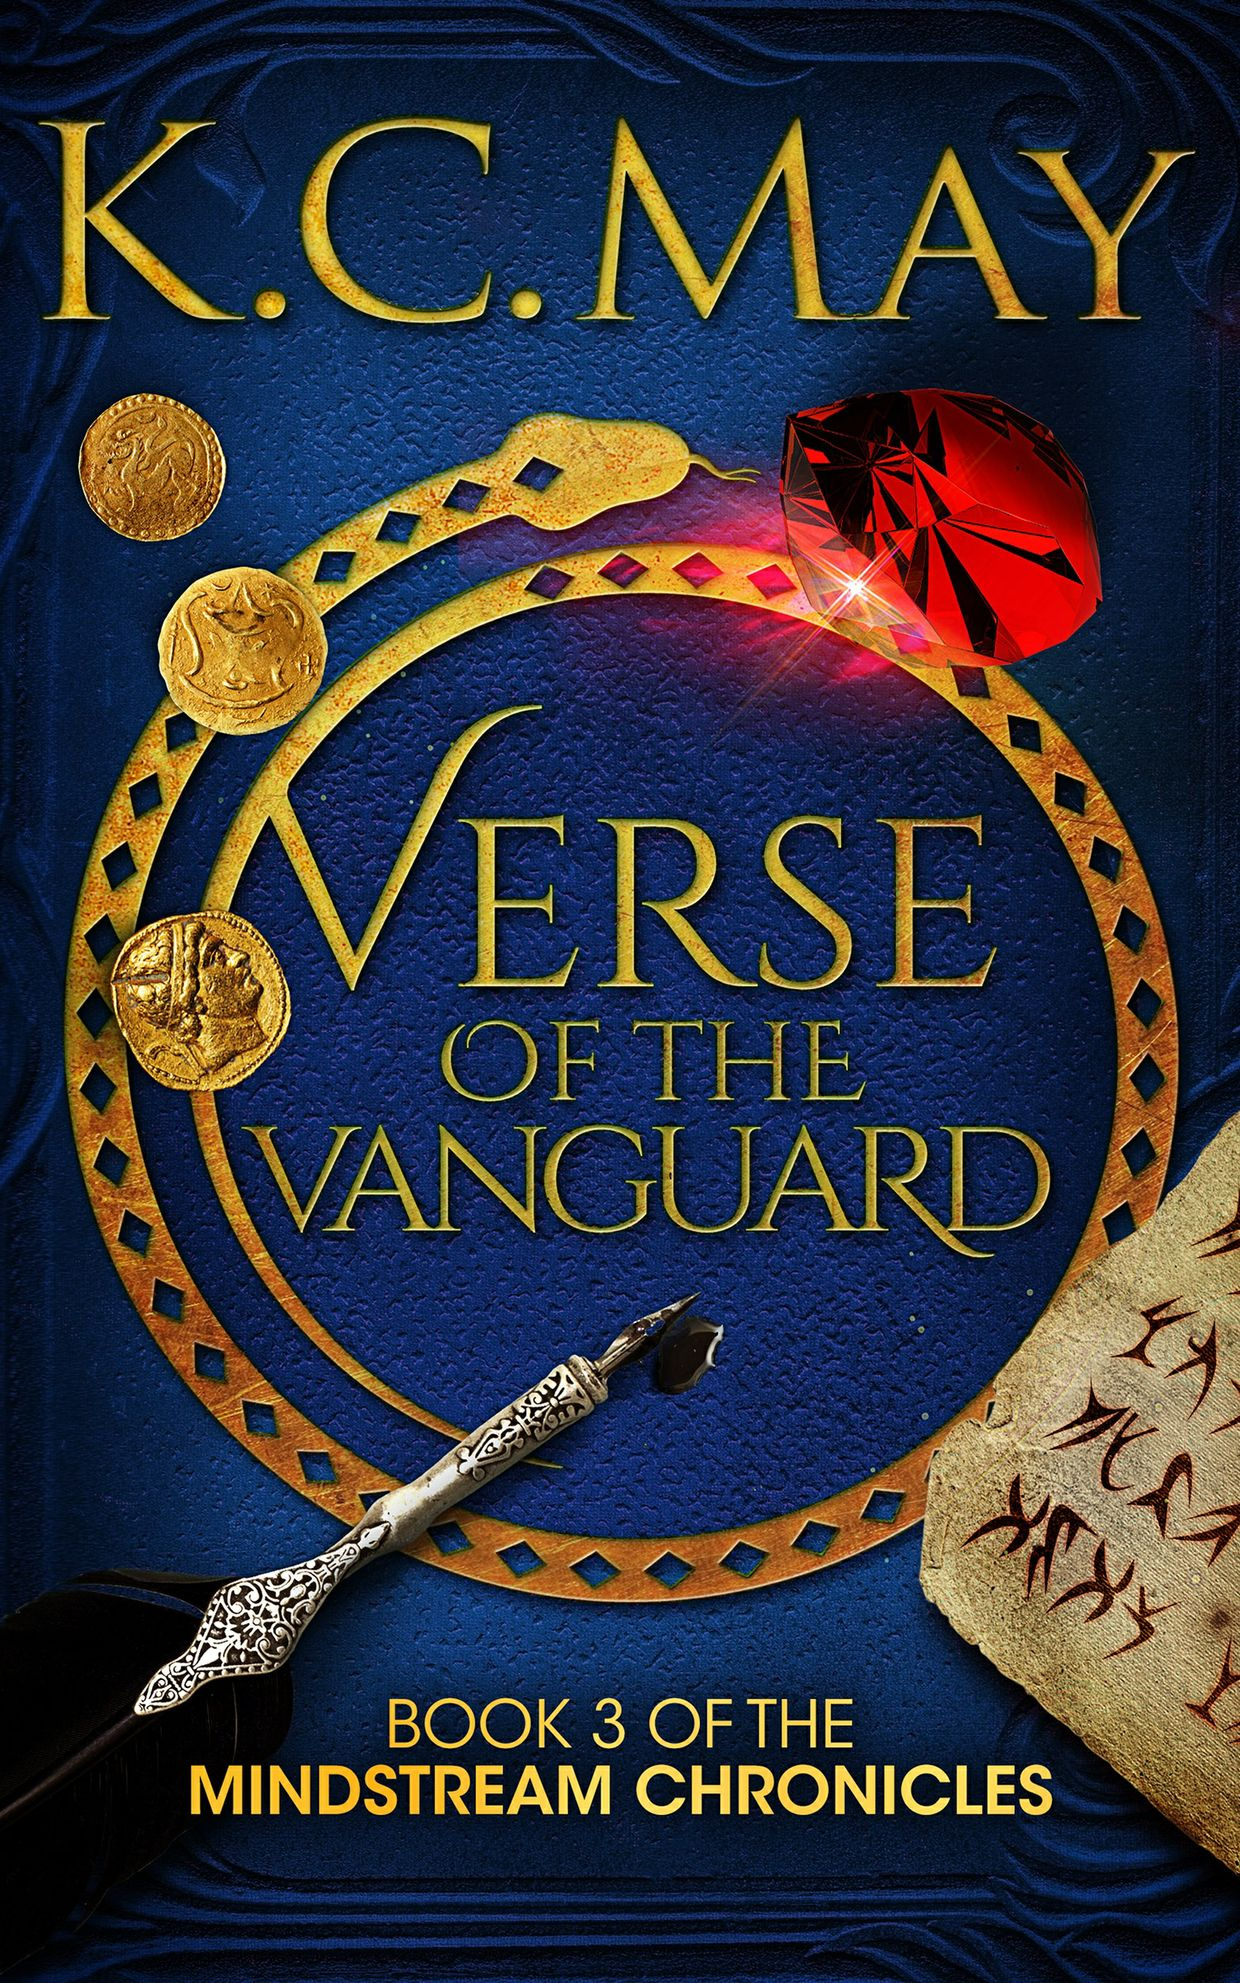 Verse of the Vanguard - Kindle